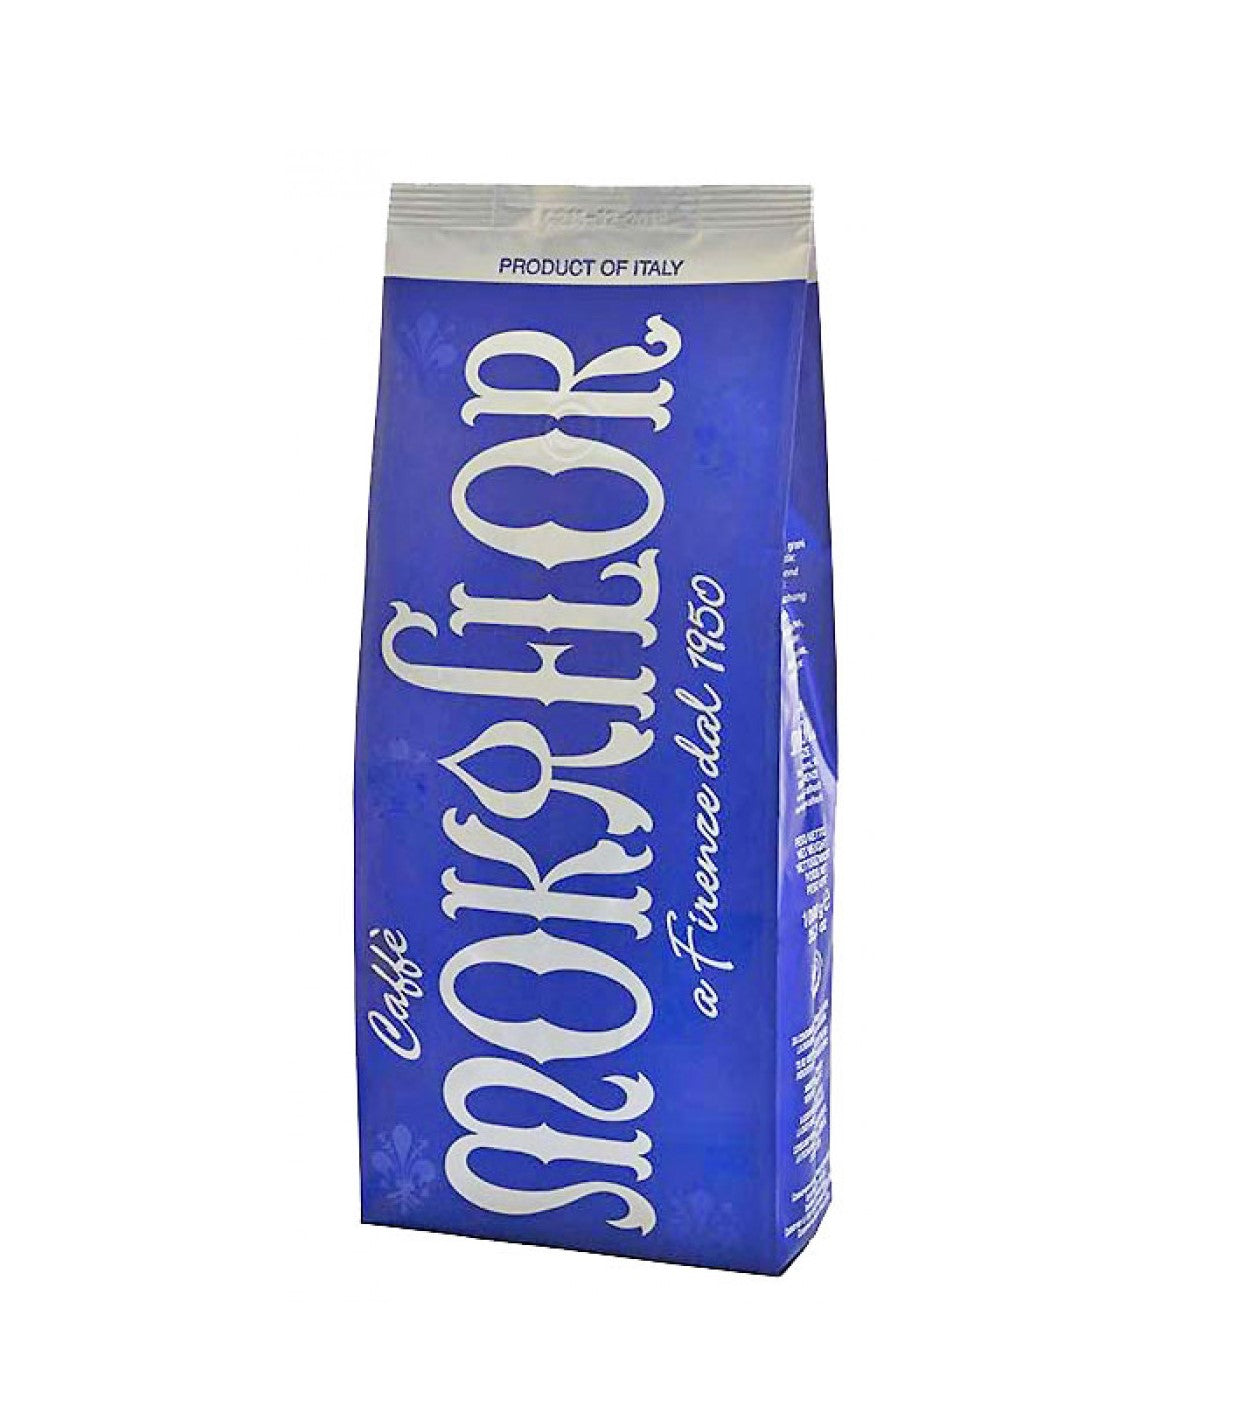 Mokaflor blu bag of coffee beans from Florence Italy in a blue bag with silver writing